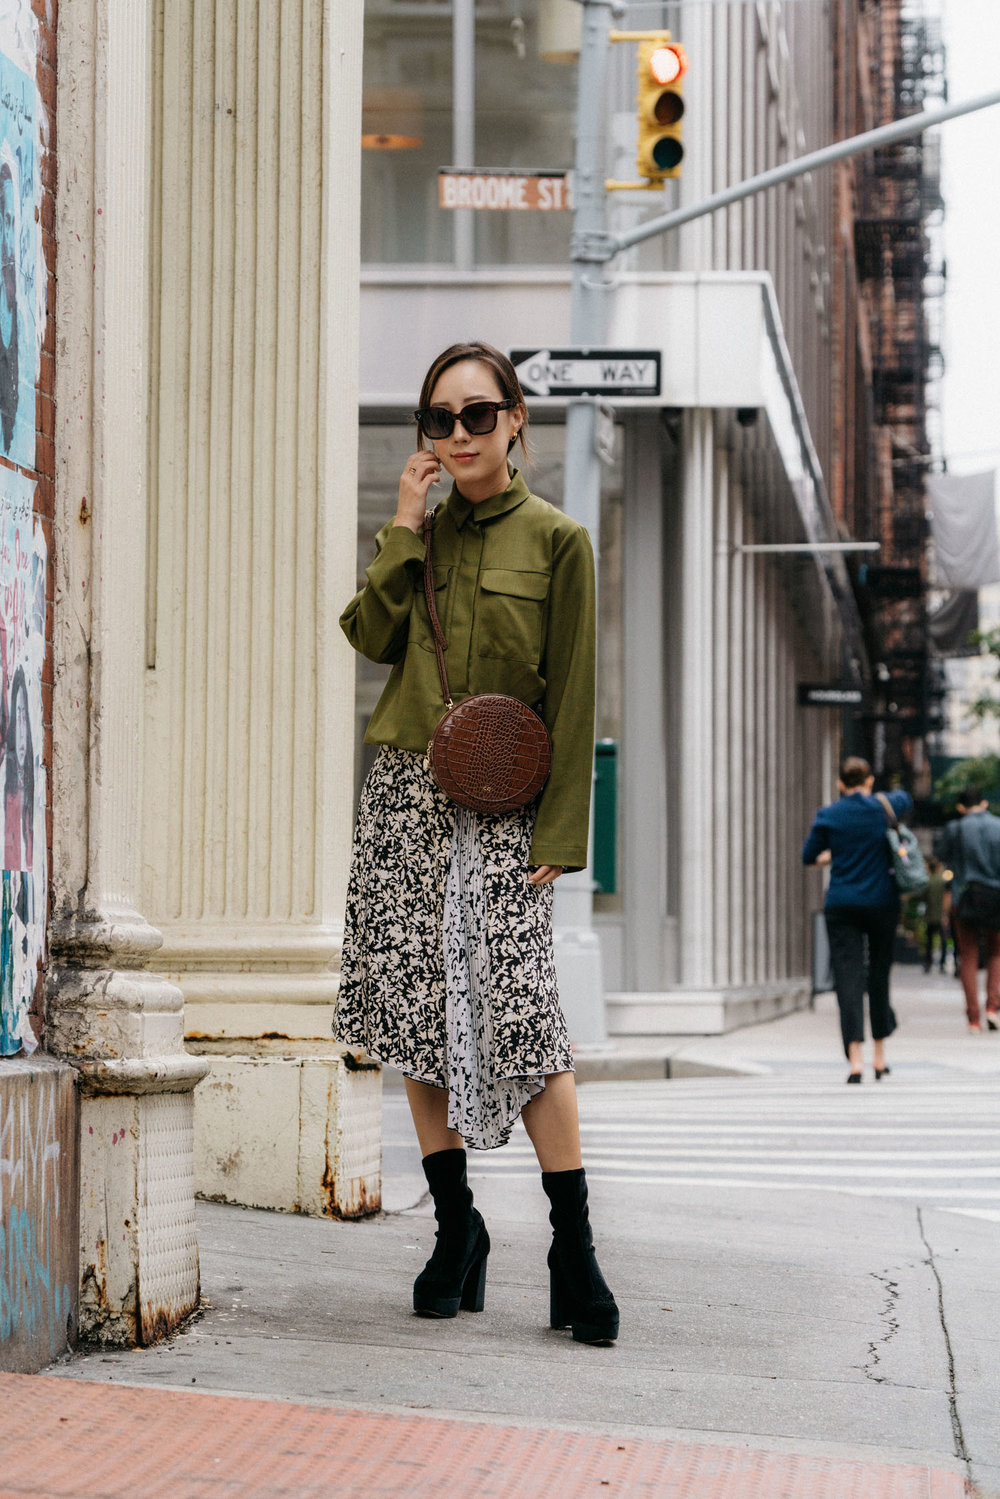 Norse Projects Top, Proenza Schouler Skirt, Miu Miu Boots, CO Collection Bag, Céline Sunglasses